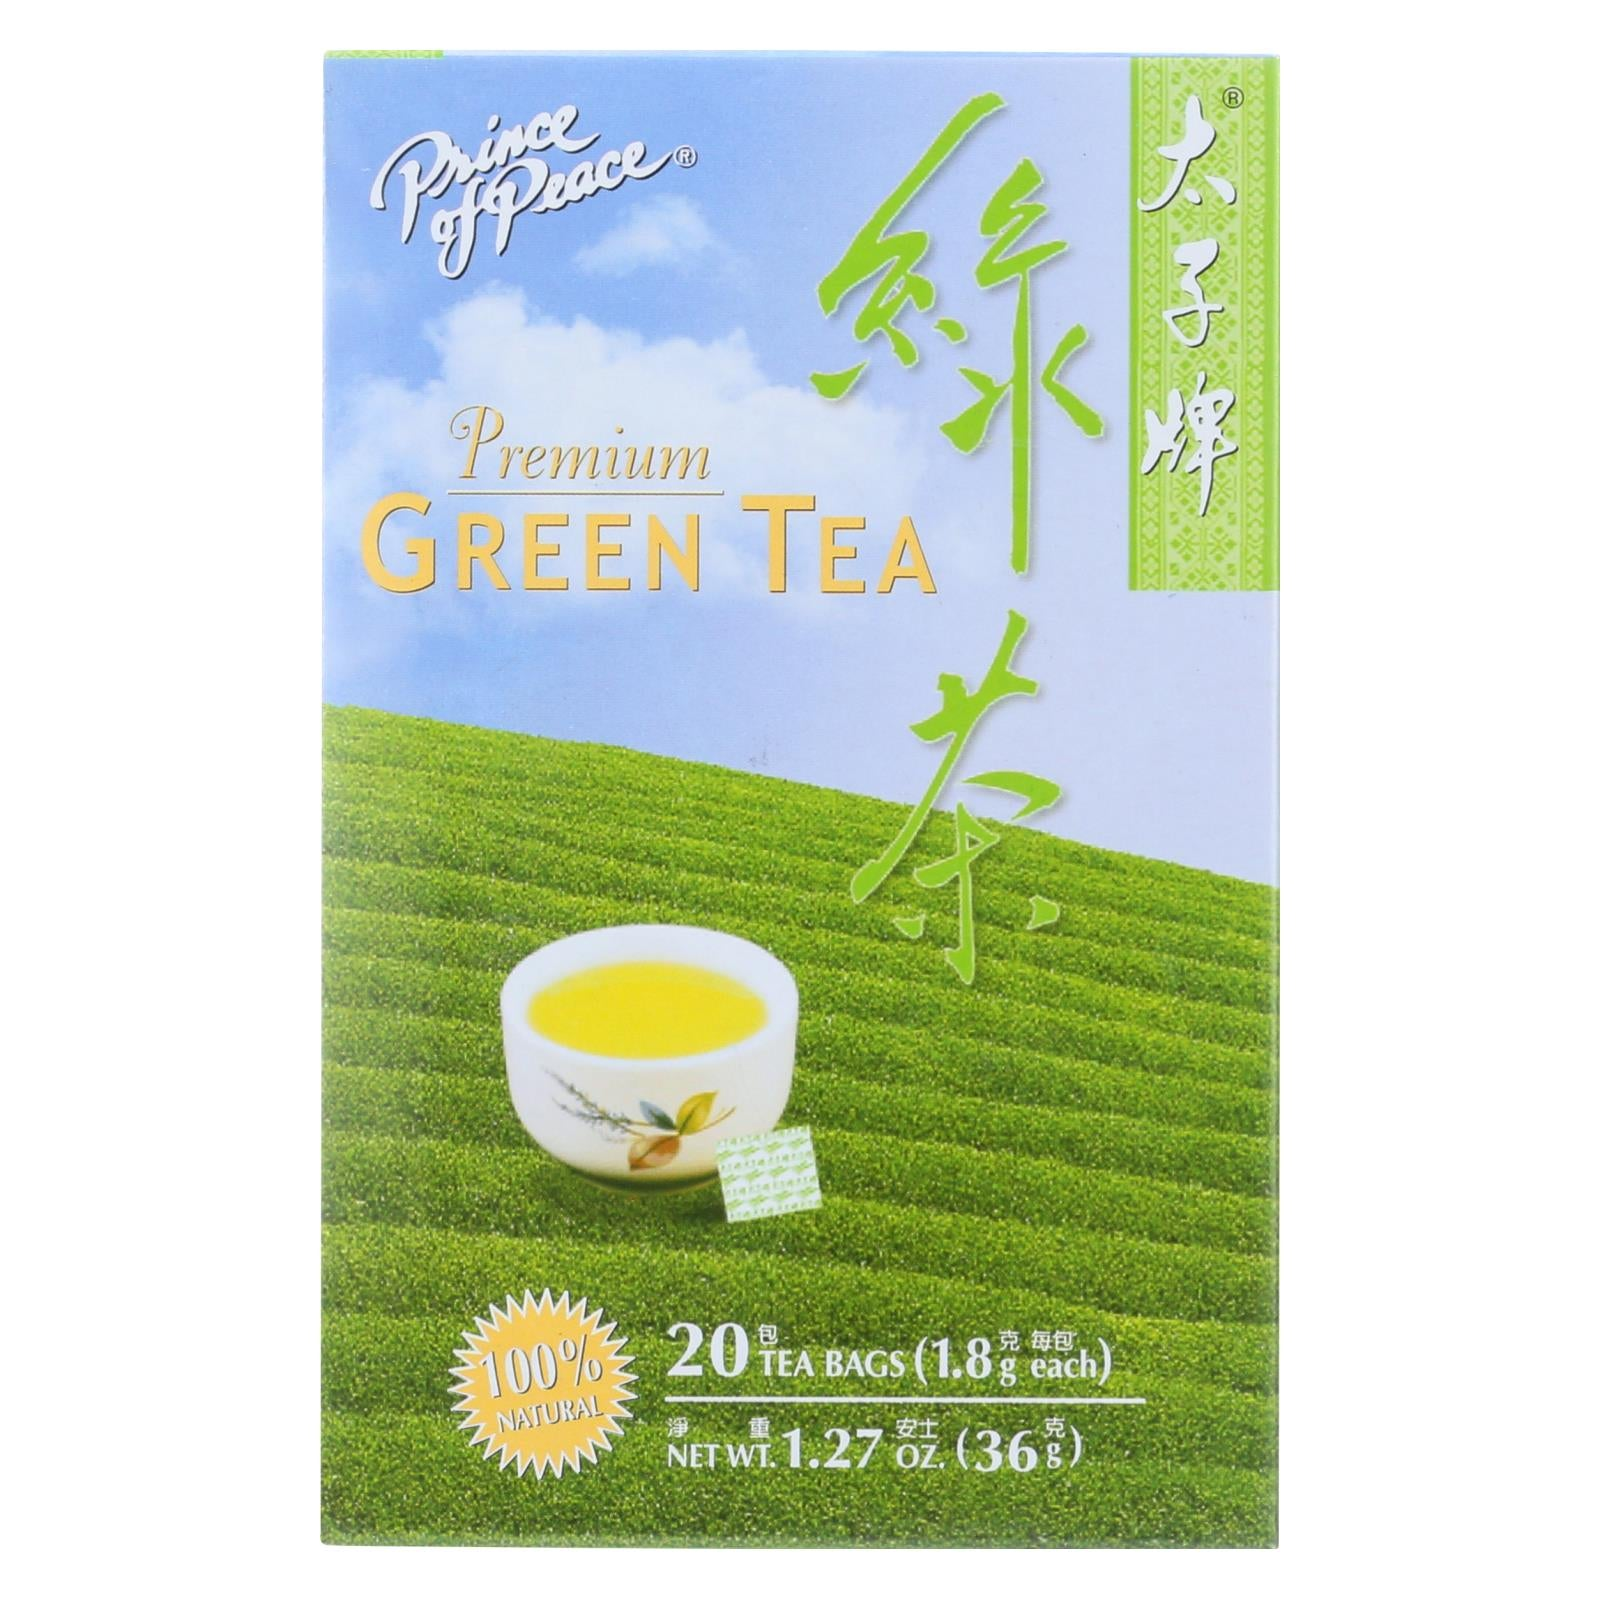 Buy Prince of Peace Premium Green Tea - 20 Tea Bags - Green Tea from Veroeco.com